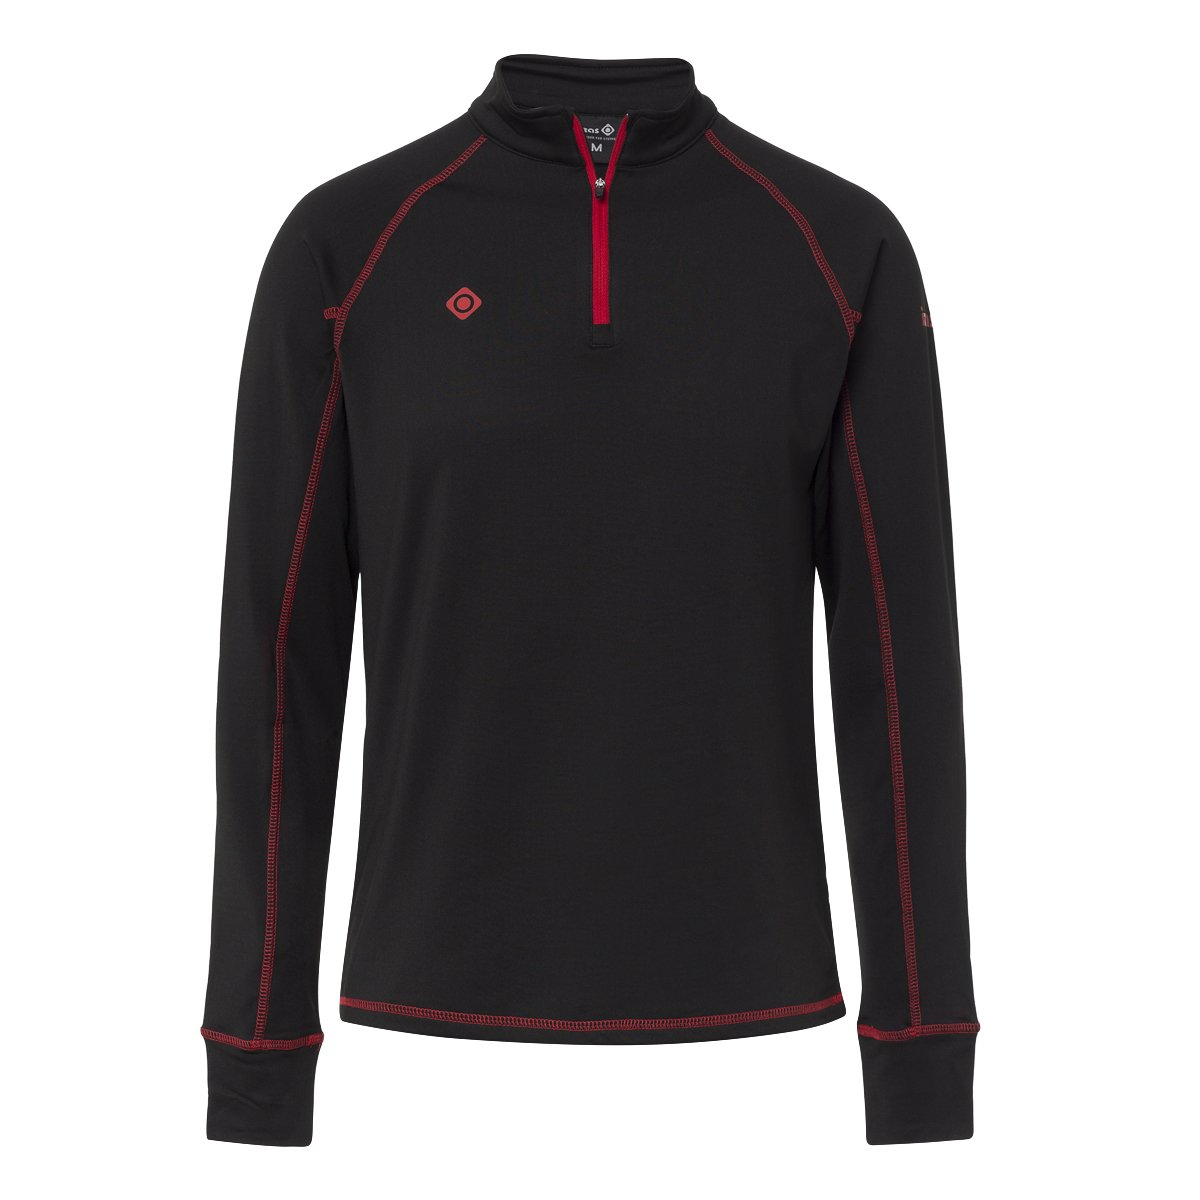 CAMISETA TERMICA GORNER 230GR 92% POLYESTER 8% ELASTANE POLAR-STRETCH ALL SEASONS BLACK/RED